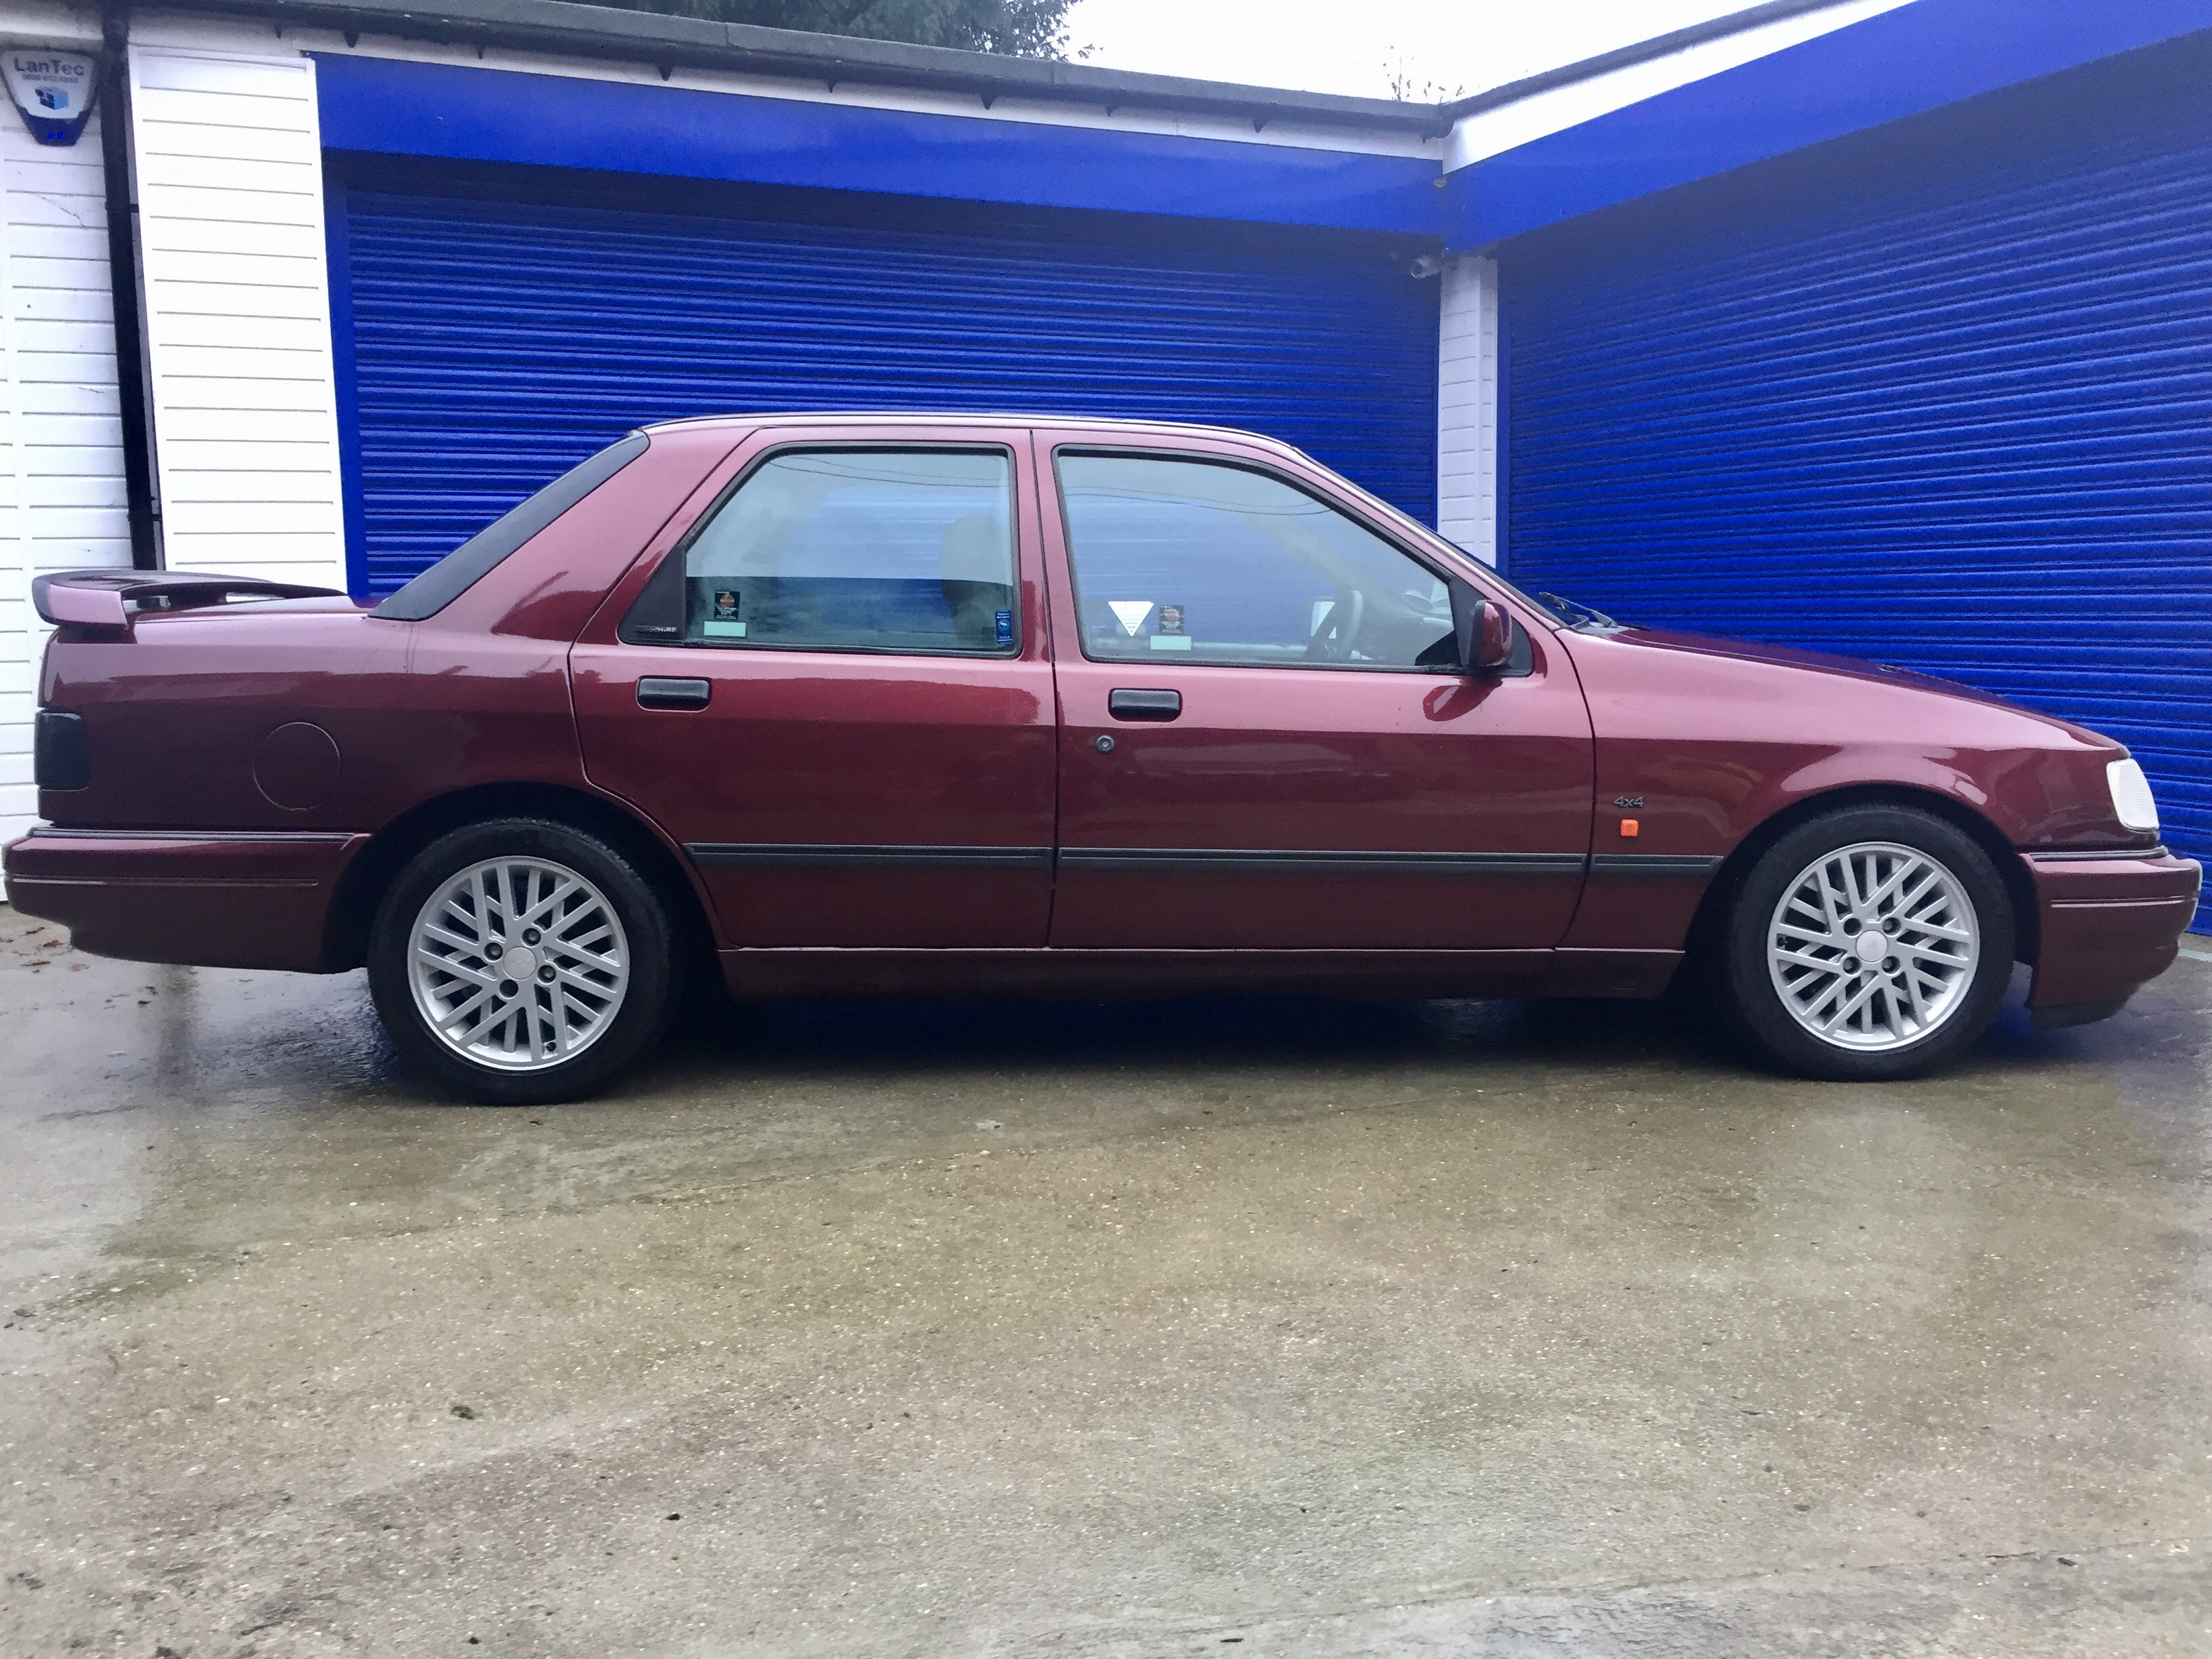 FORD SIERRA RS COSWORTH 4X4 1990 - Moto Cars